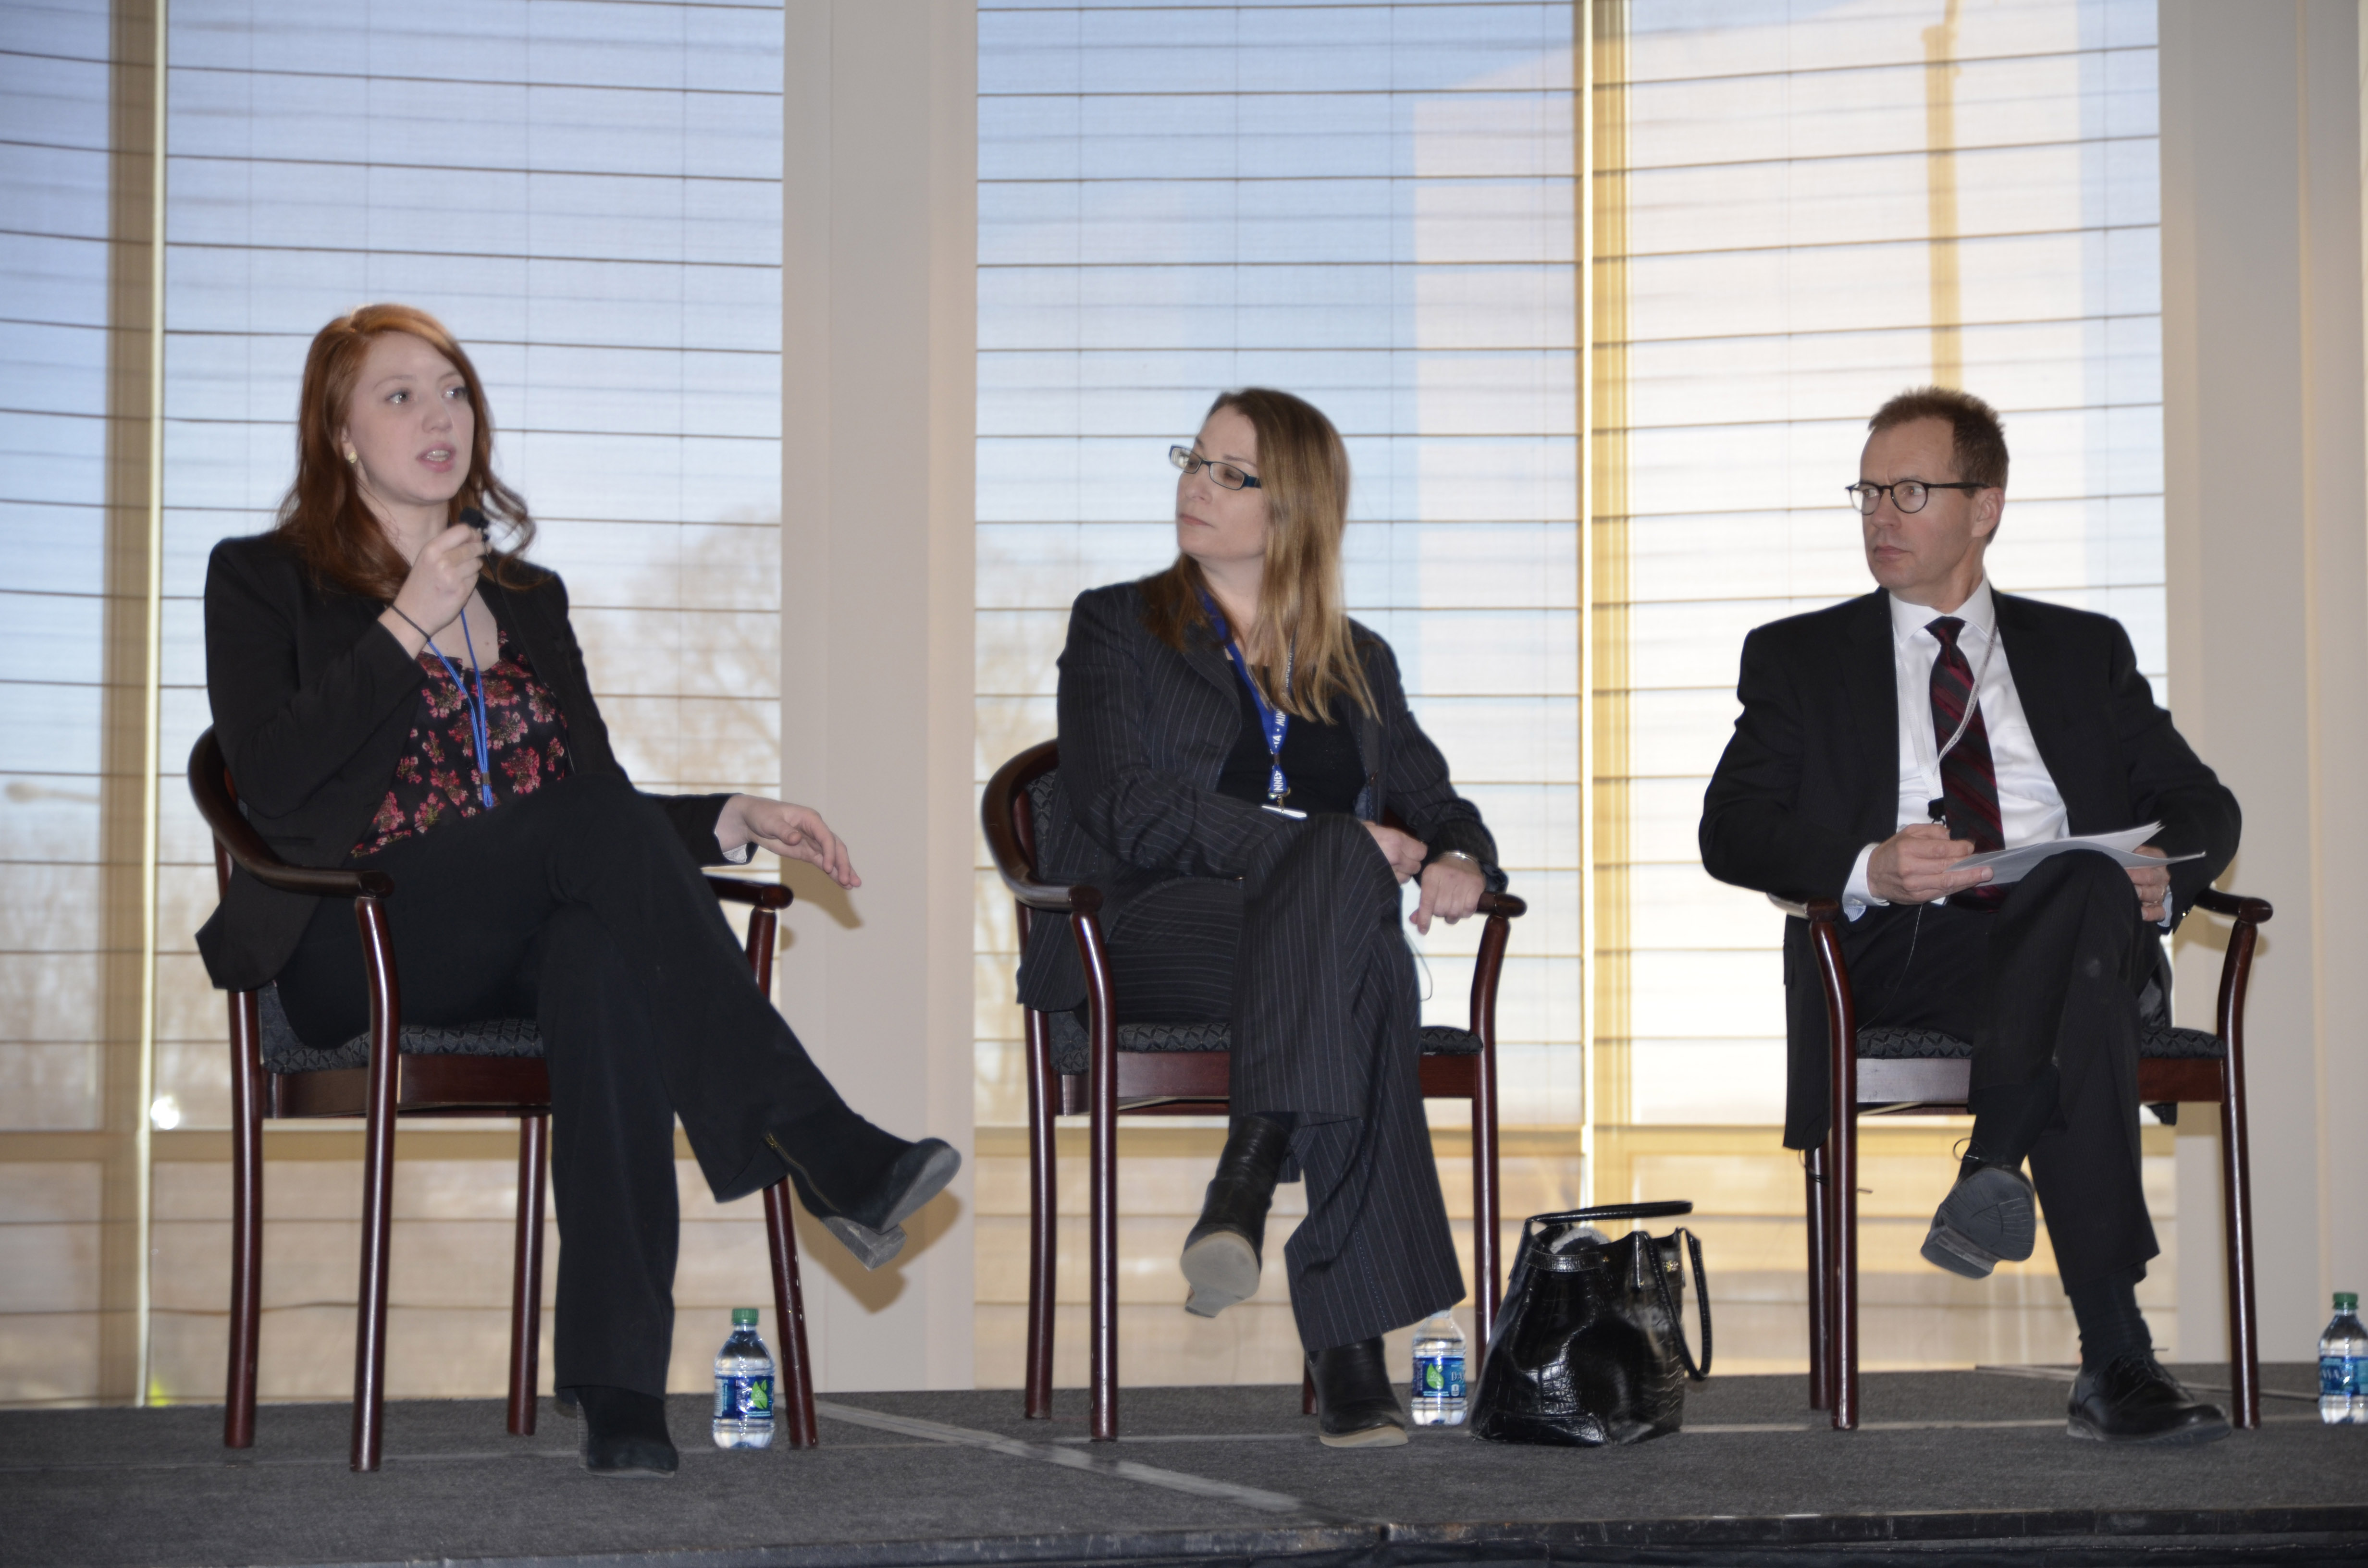 Political reporters Briana Bierschbach (left, MinnPost) and Rachel Stassen-Berger (center, St. Paul Pioneer Press) discussed political issues during a media panel.